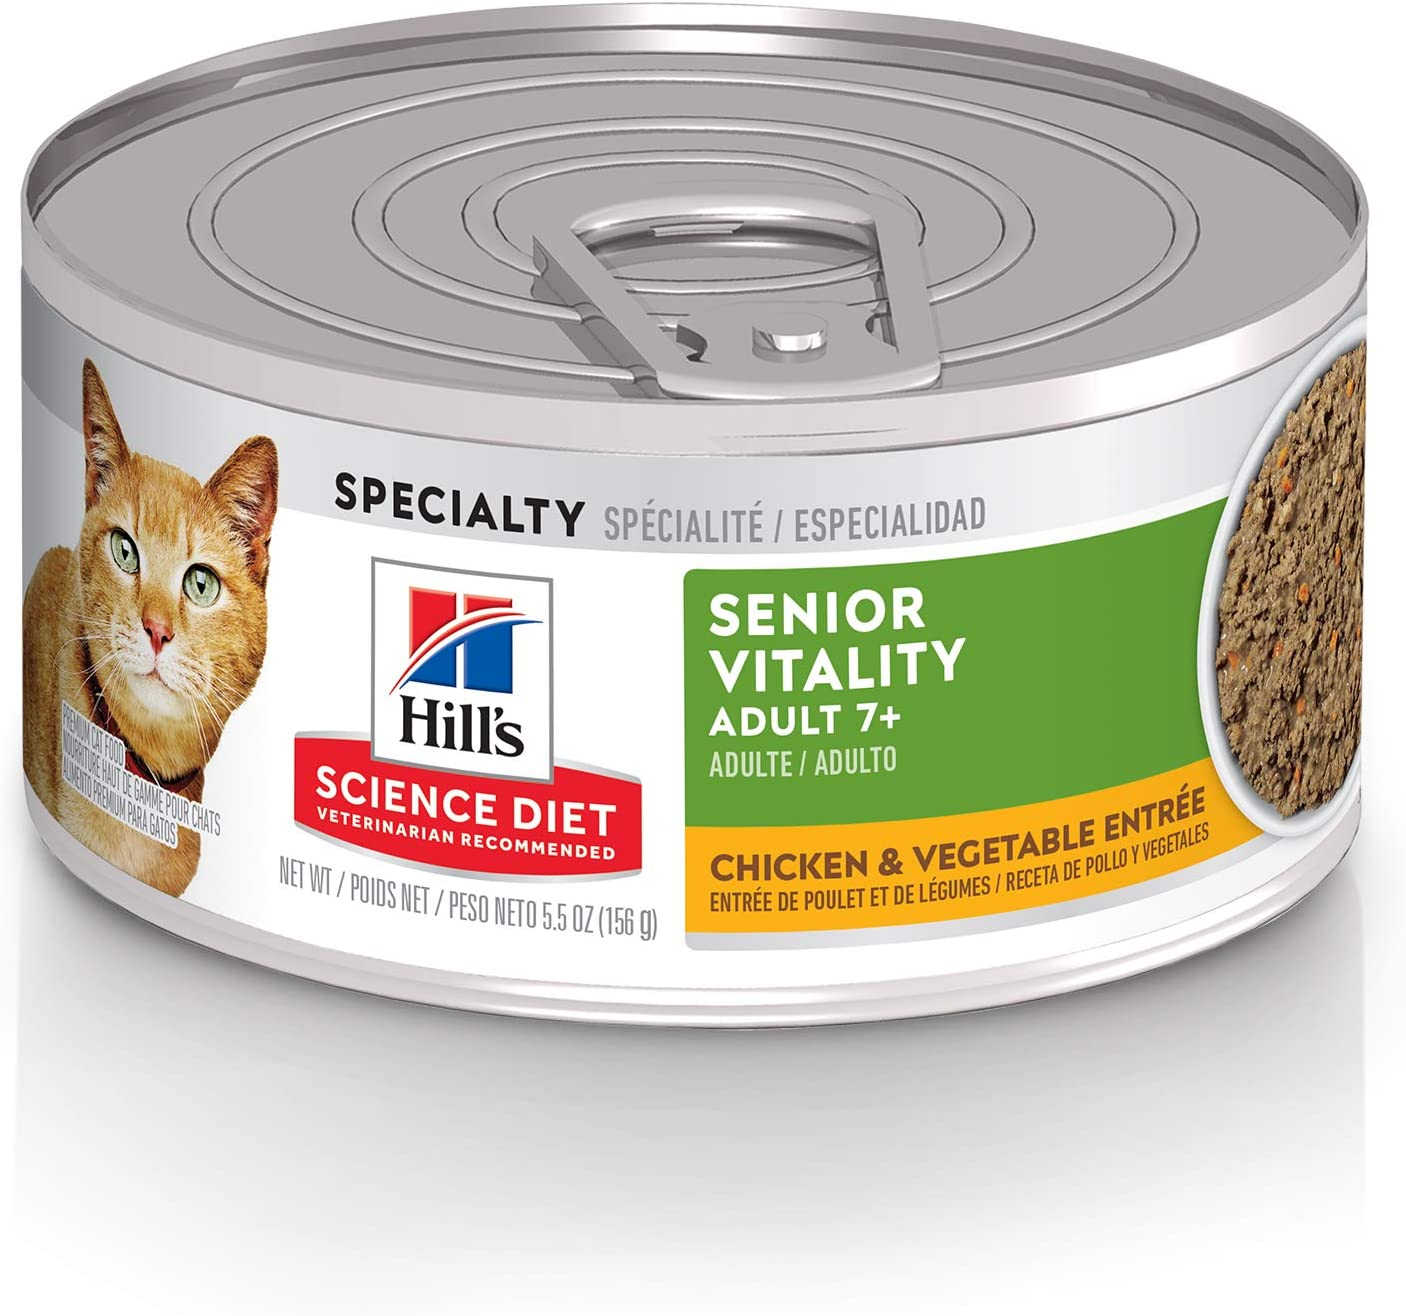 Hill's Science Diet Adult 7+ Senior Vitality Wet Cat Food, Chicken & Vegetable Entree, 5.5 oz Cans, Case of 24